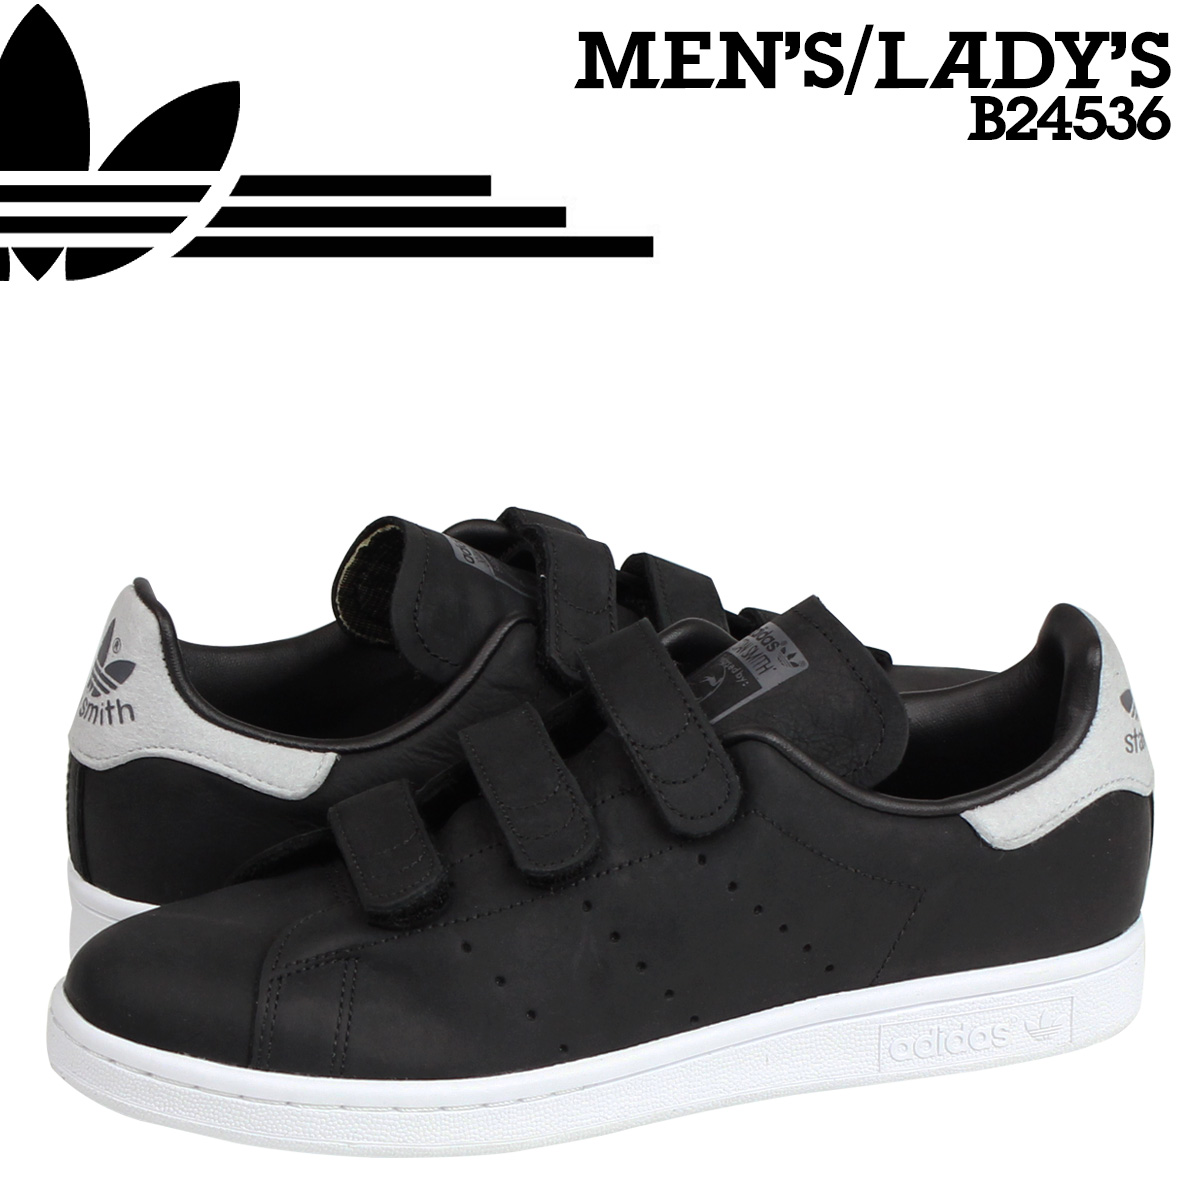 adidas originals stan smith 2 mens Black